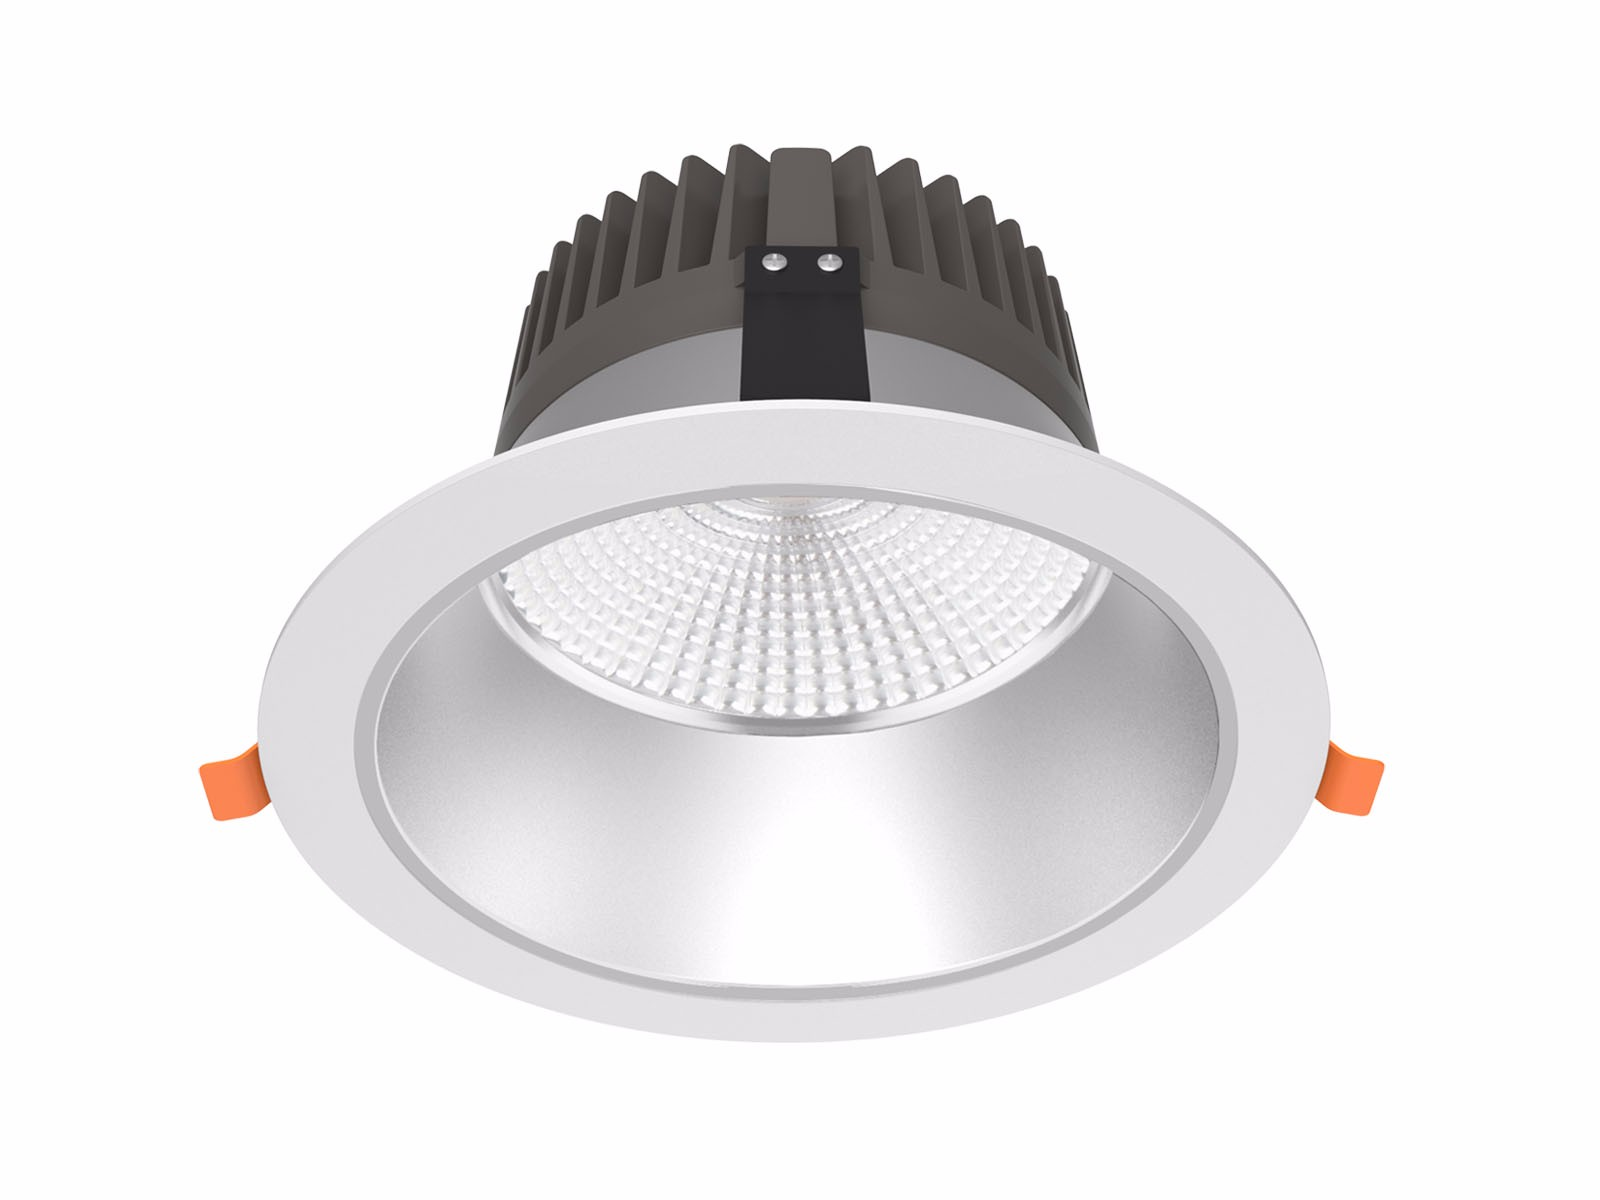 CL94 UGR 19 LED recessed downlight